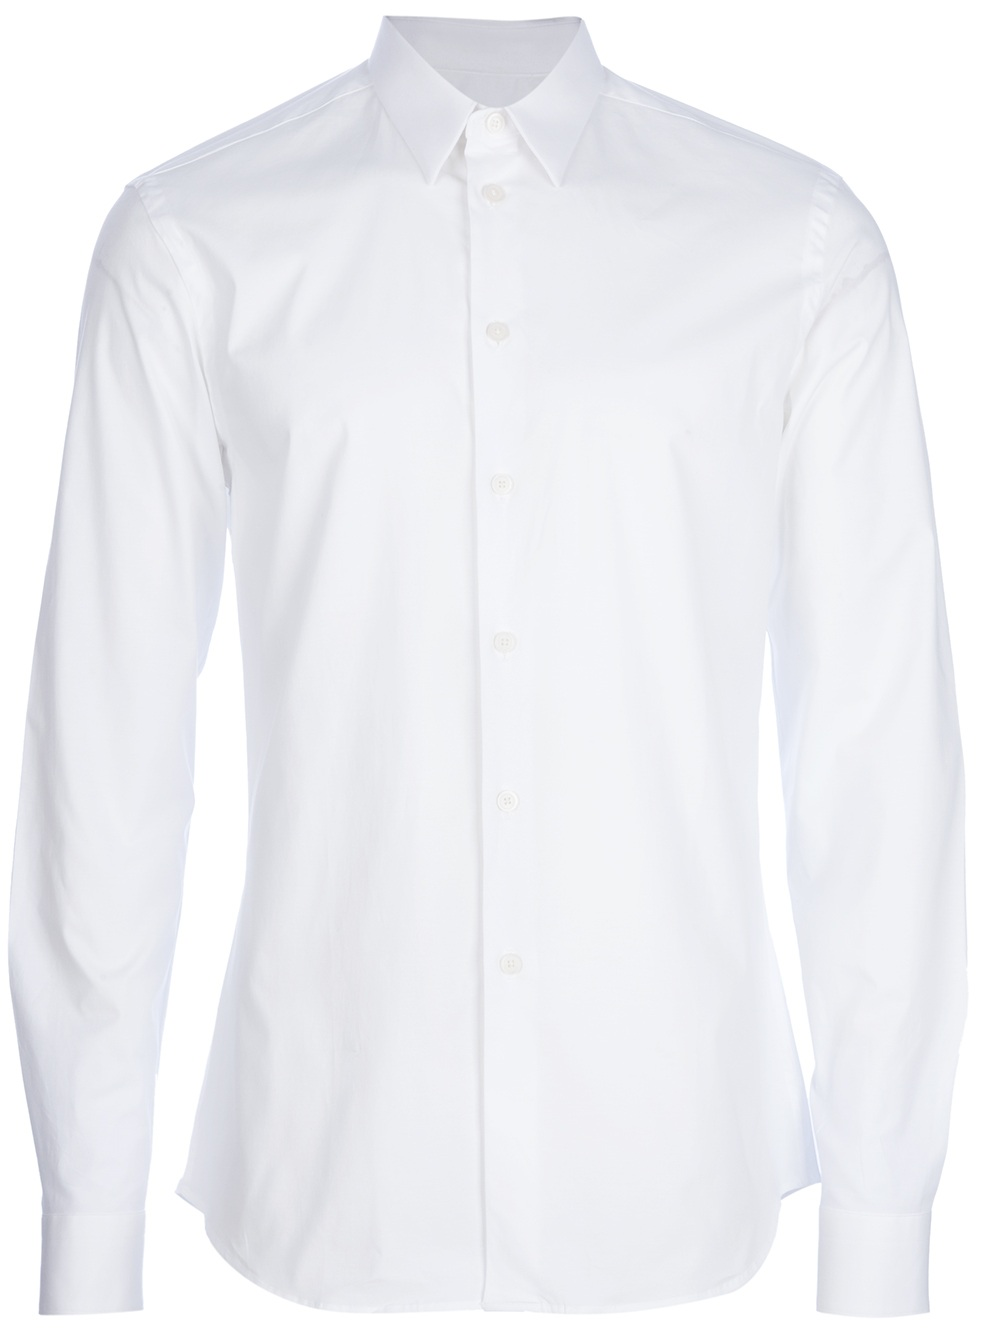 Givenchy Button Up Shirt In White For Men Lyst